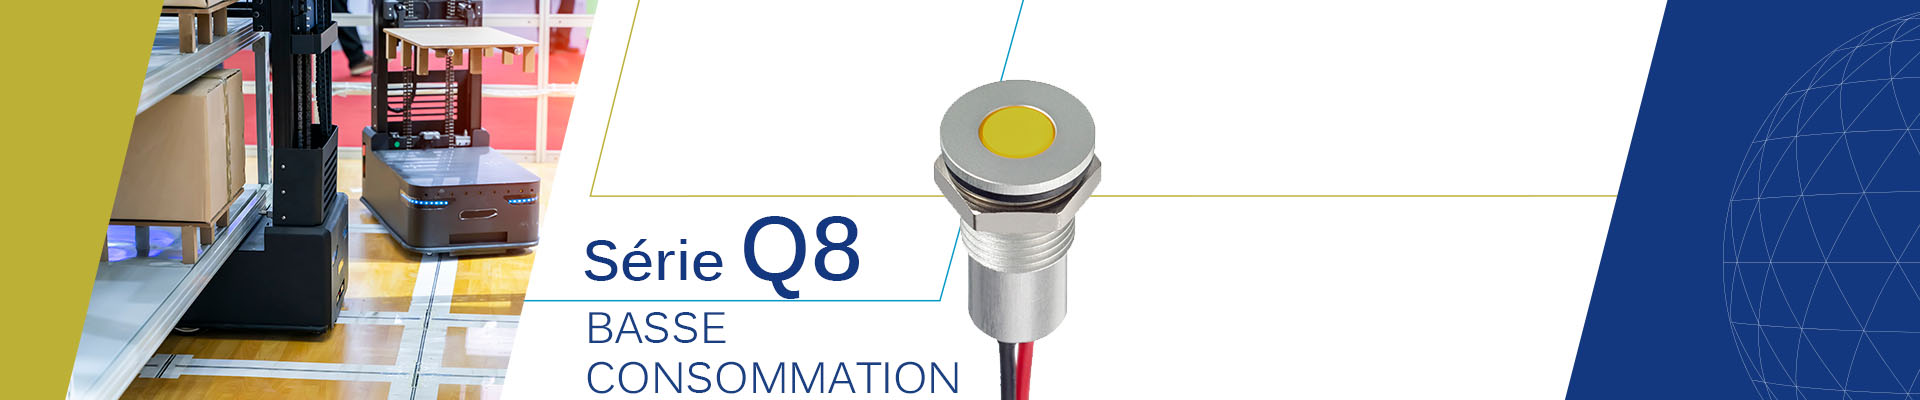 REDUCE THE POWER CONSUMPTION BY UP TO 90%